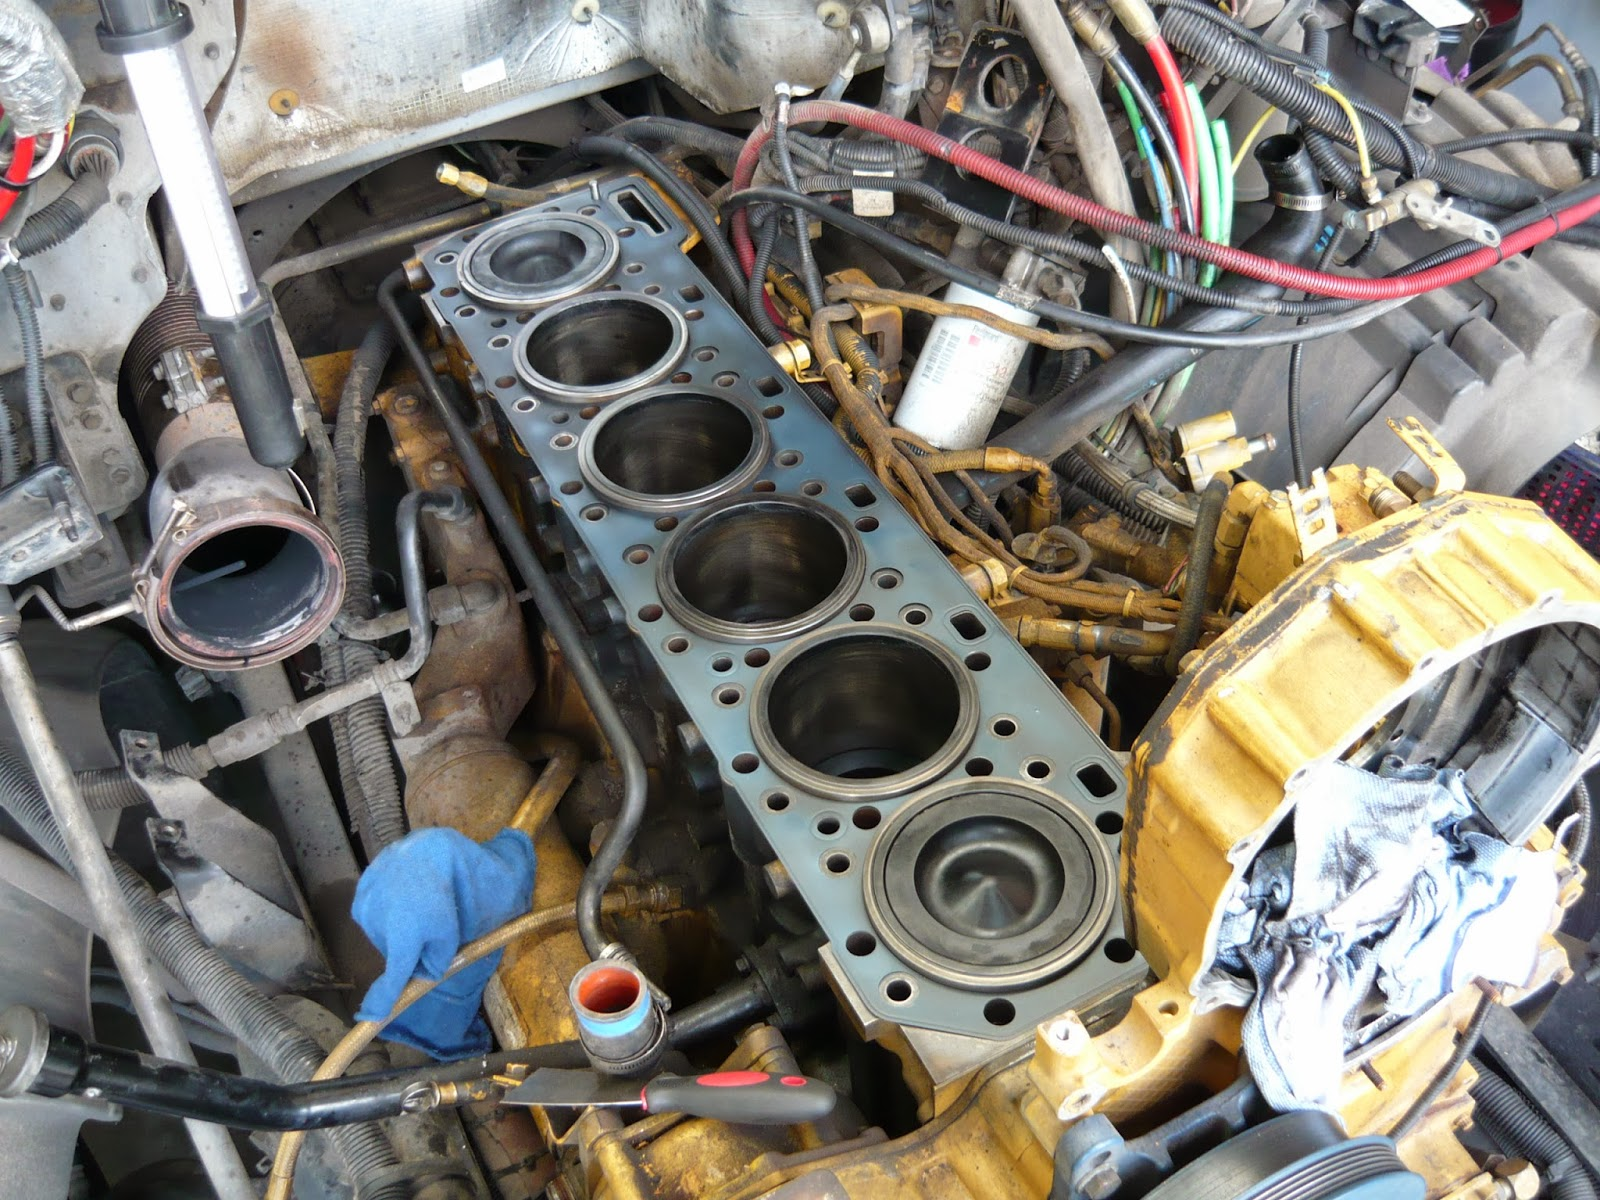 Caterpillar Engine Misc Parts Bumy Hl Uzo F moreover Caterpillar E C C C C C Engines Troubleshooting Pdf furthermore Scv also Cat Dcs Sis Controller as well F. on cat c12 engine fuel system